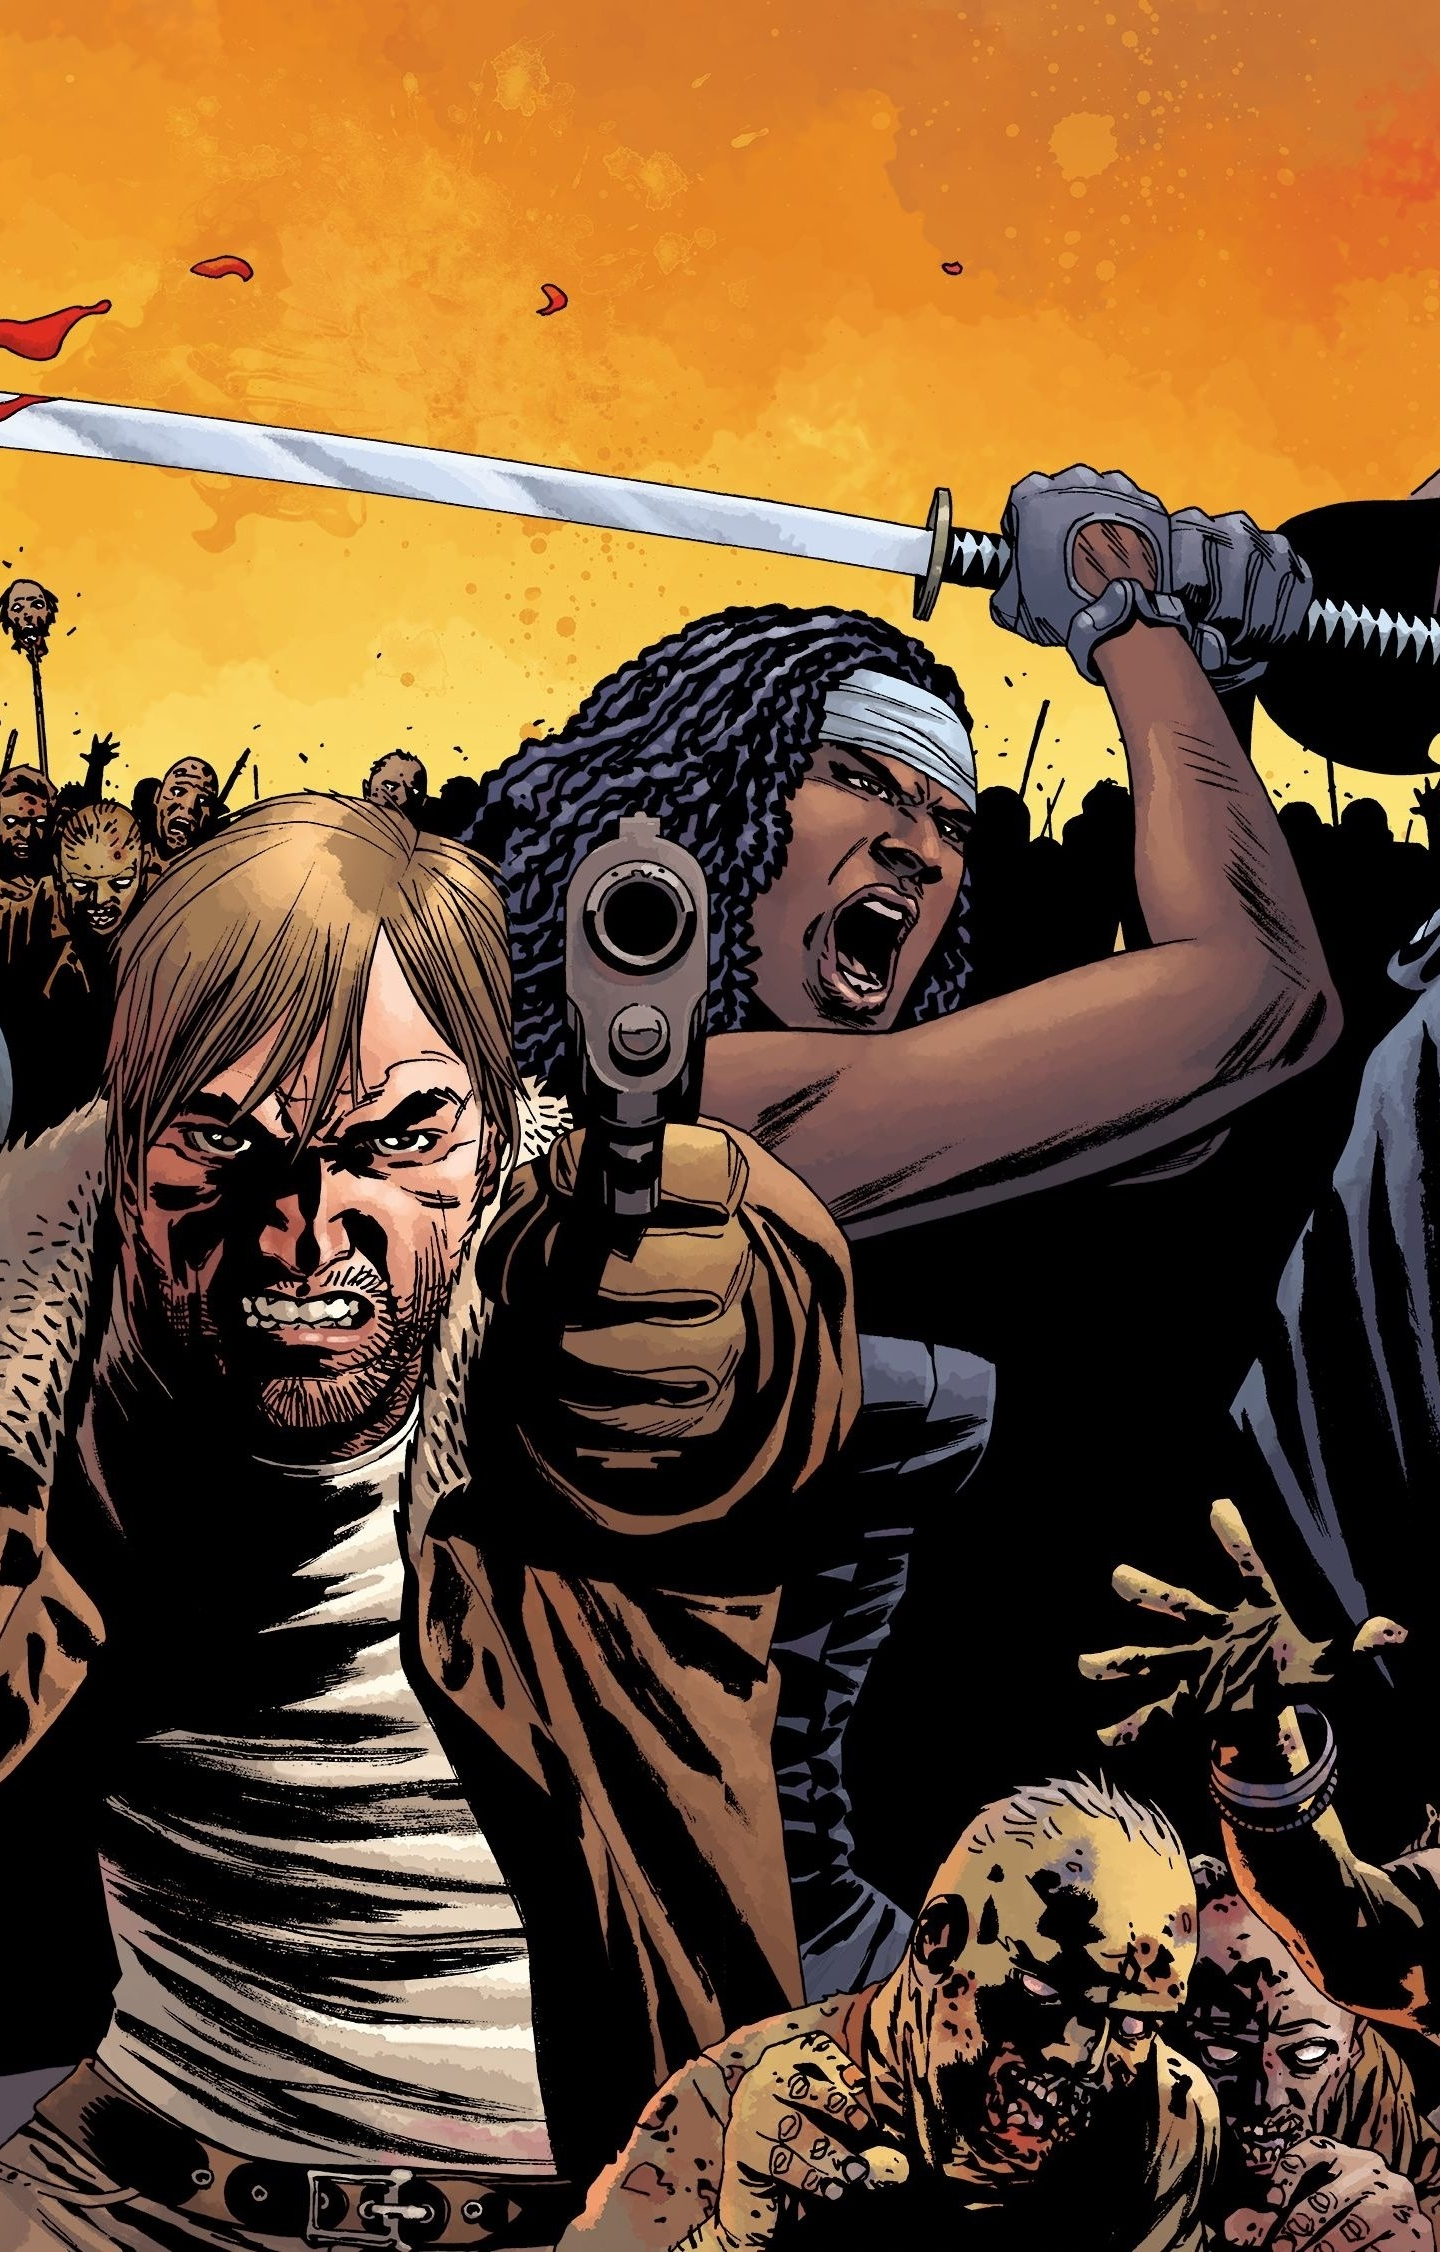 Download 1440x2630 Wallpaper The Walking Dead Comics Zombies Samsung Galaxy Note 8 Hd Image Background 4701